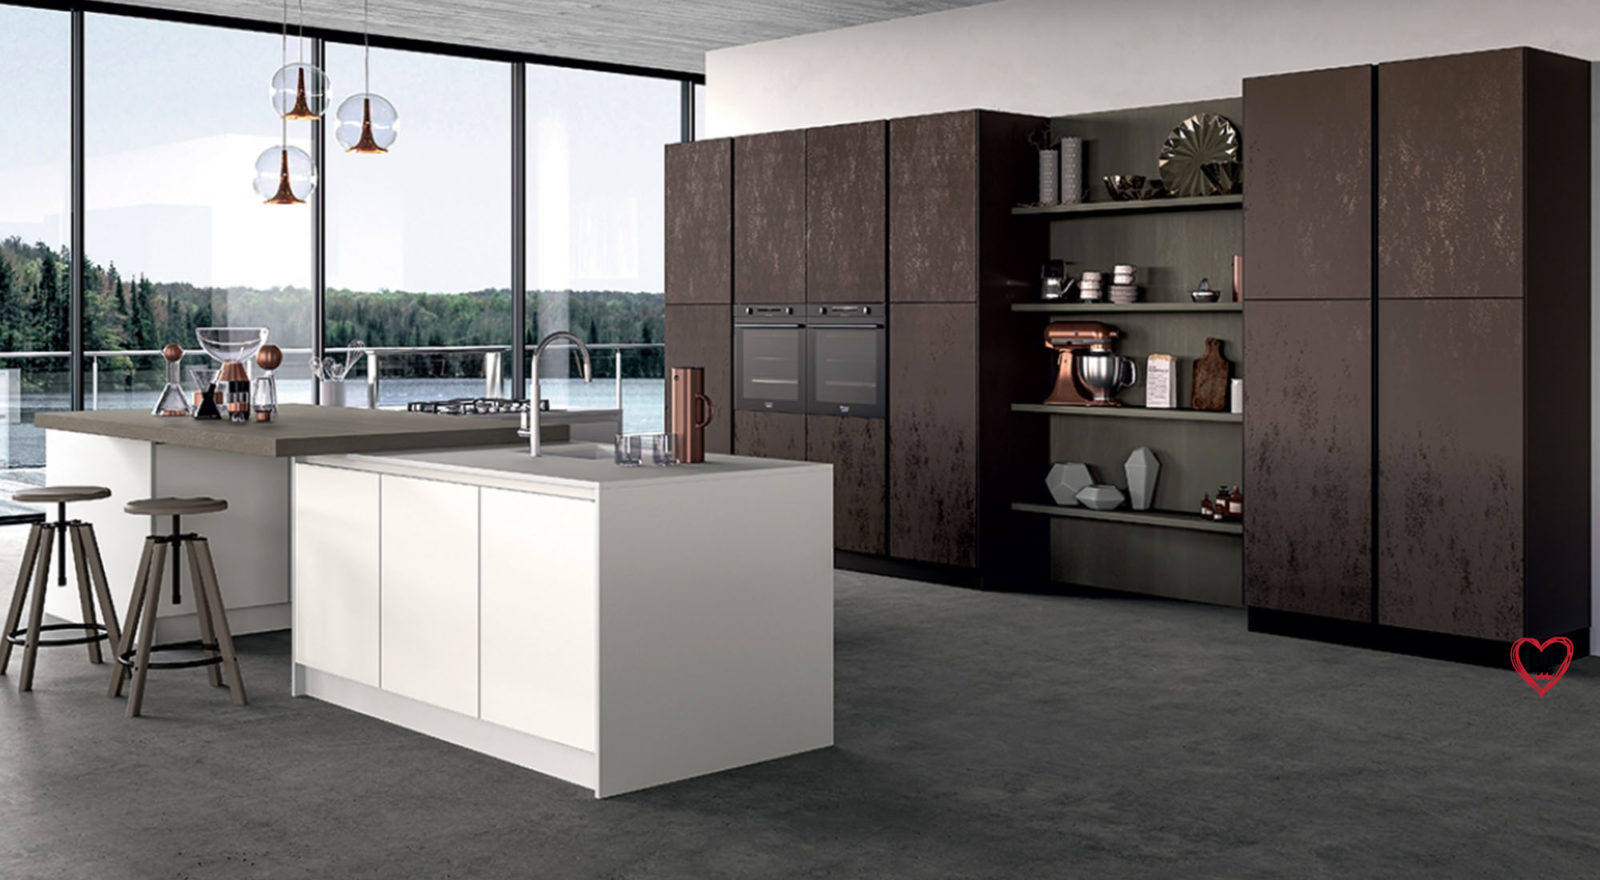 Cucine di design moderno e contemporaneo a padova - Cucine decorate ...